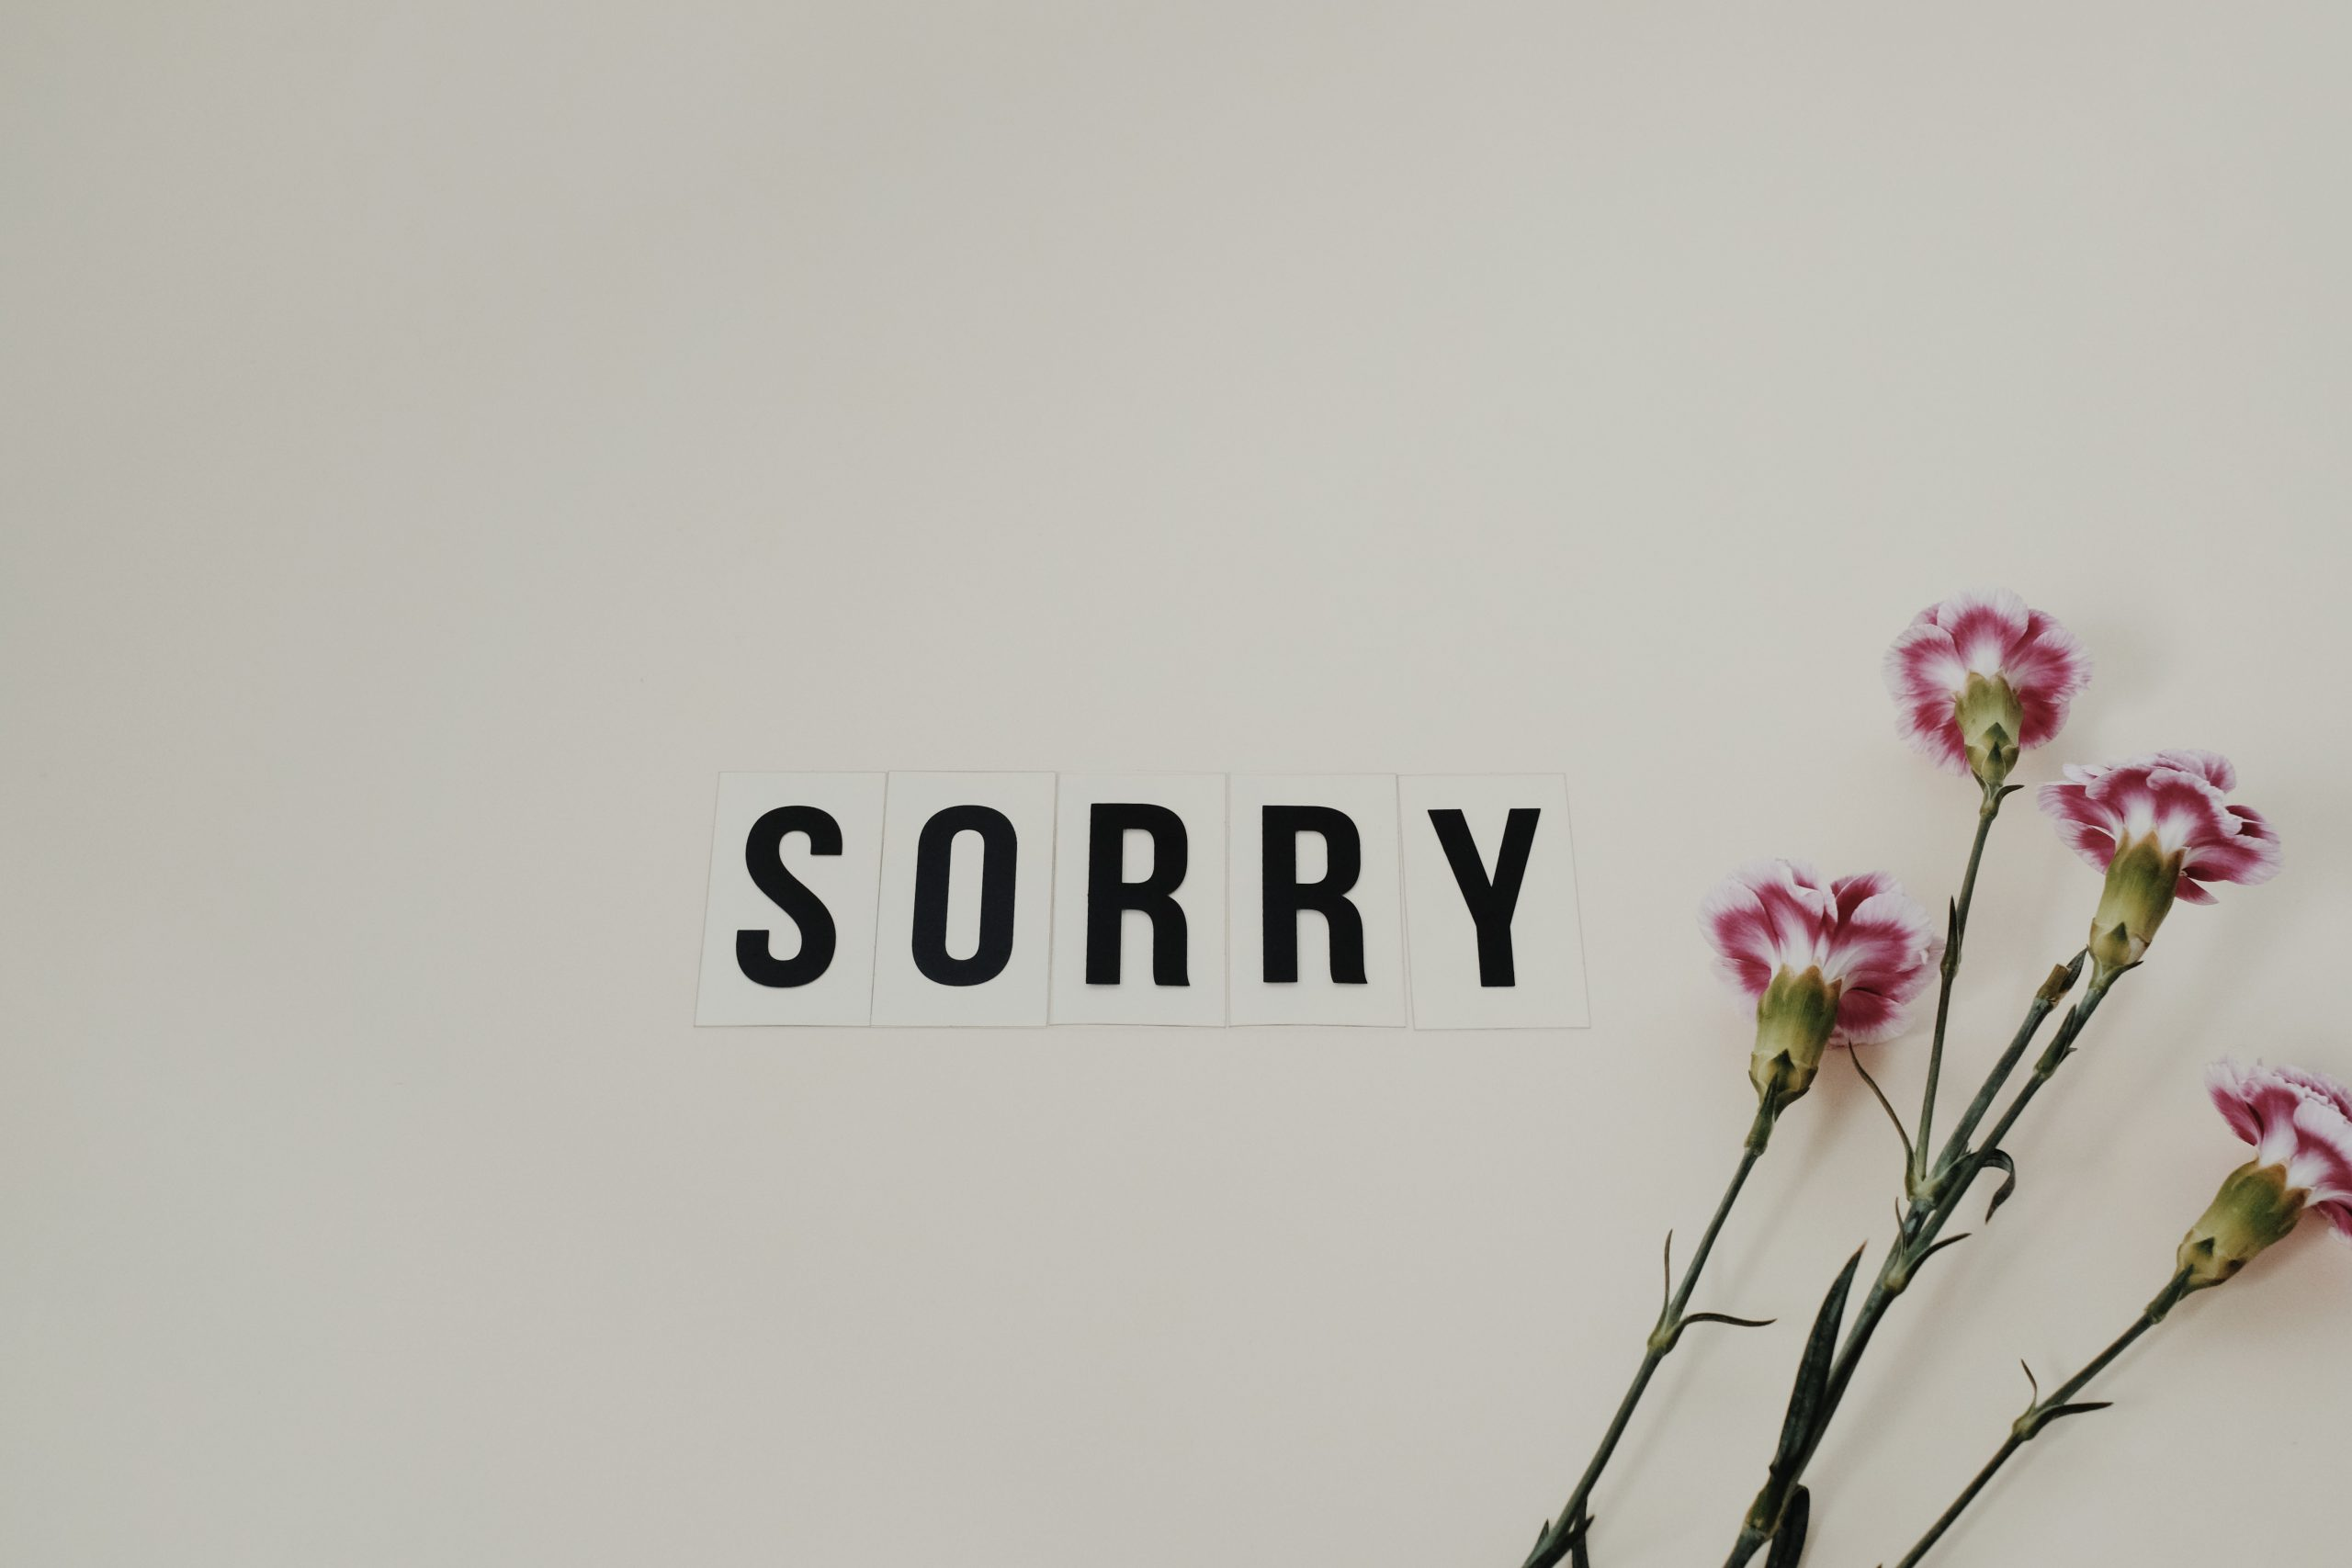 Are you expecting an apology from someone , Are you expecting an apology from someone